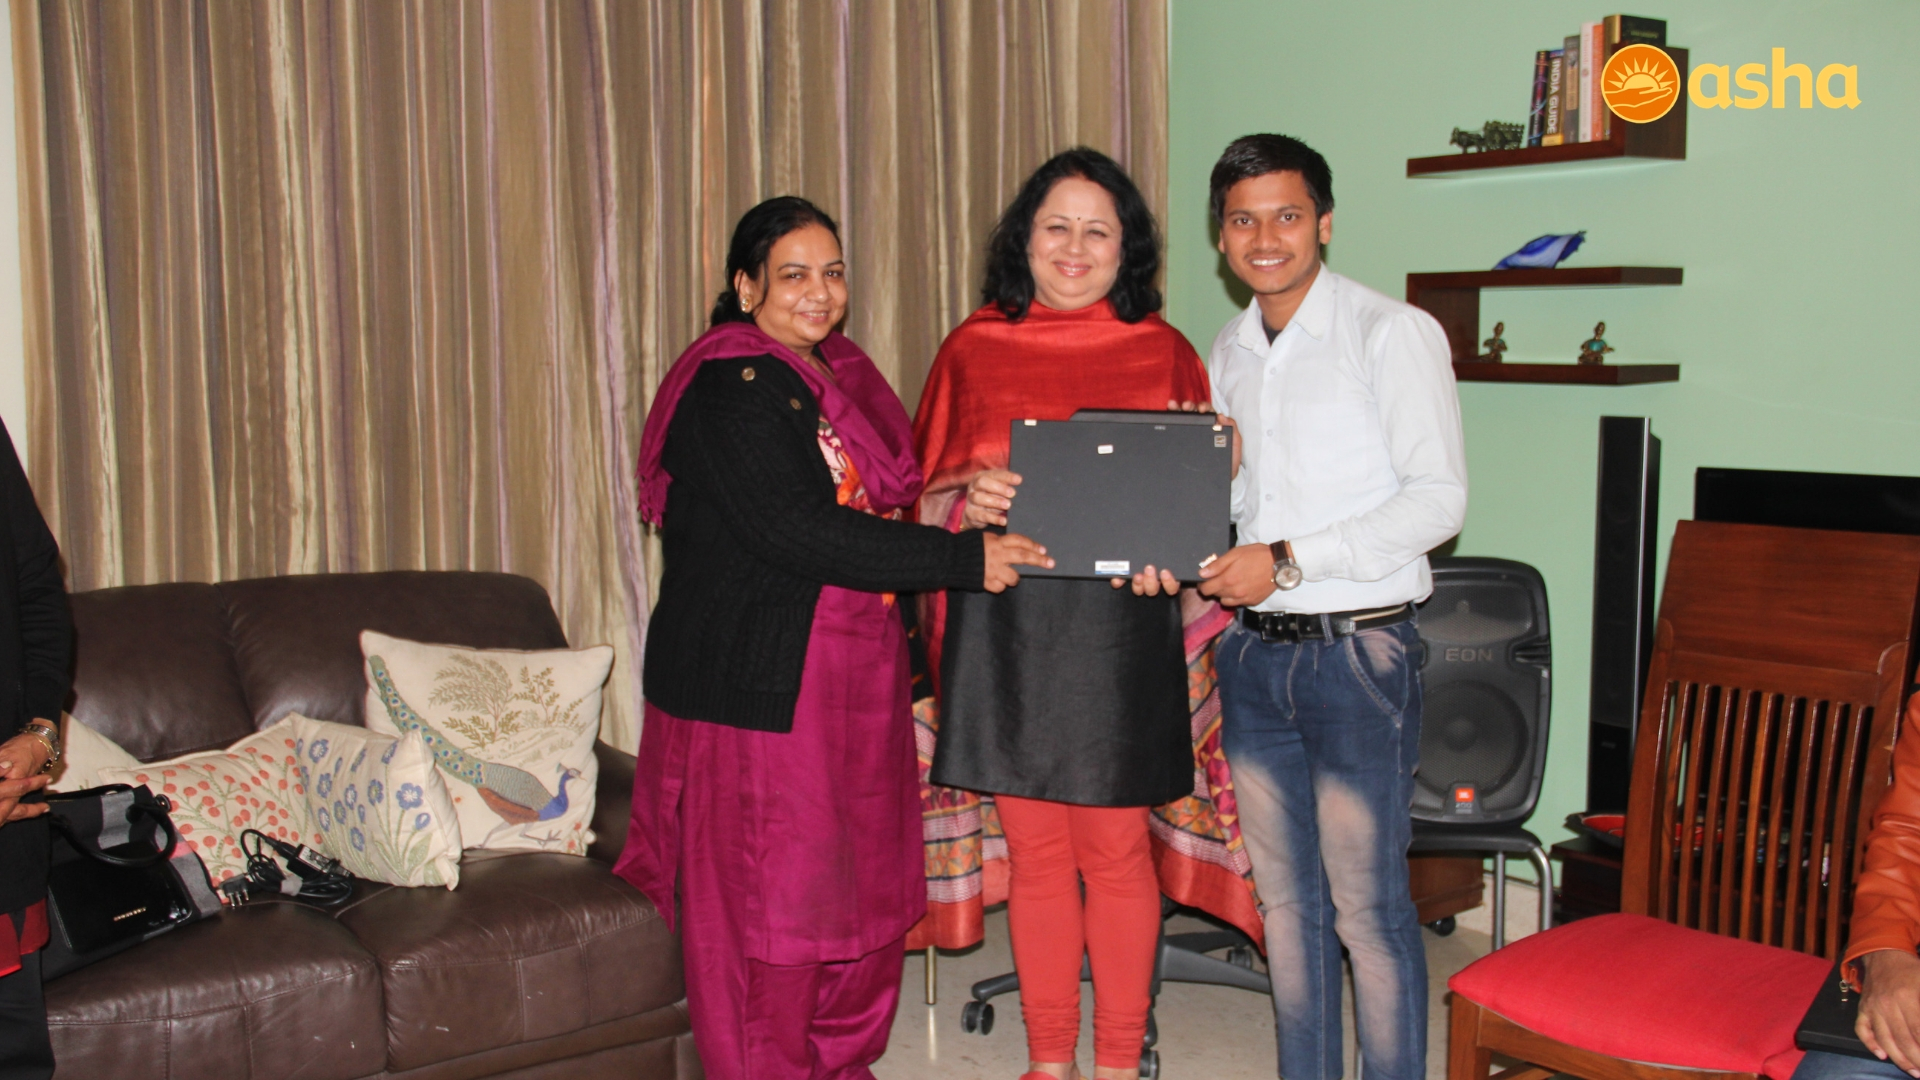 Dr Kiran Distributing The Thinkpads With Love